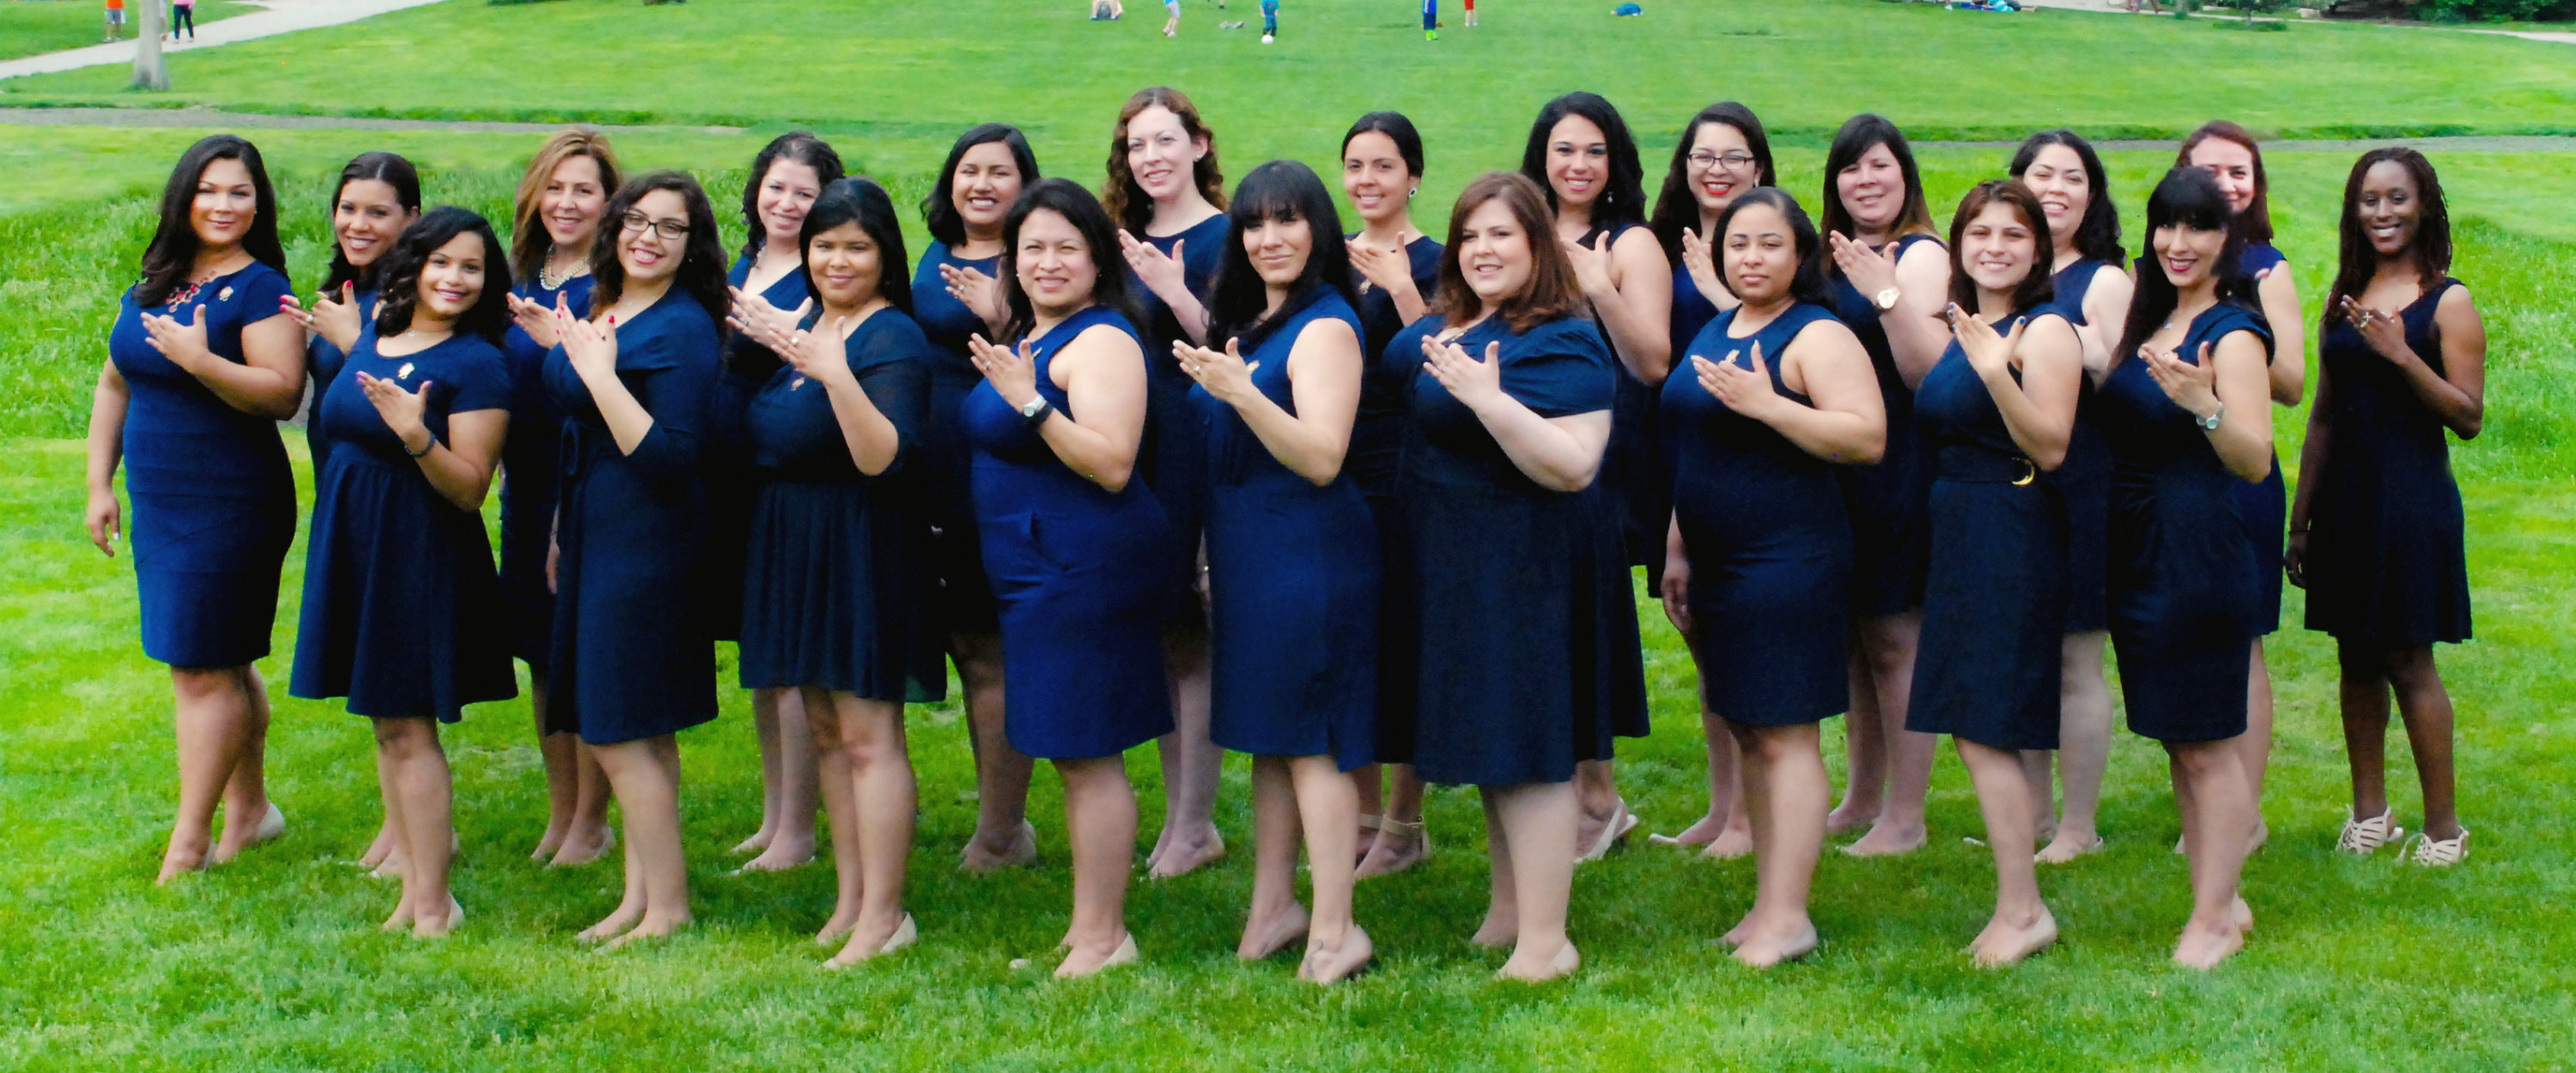 latina sorority, latina organizations, latina sororities, latina sororities in IL